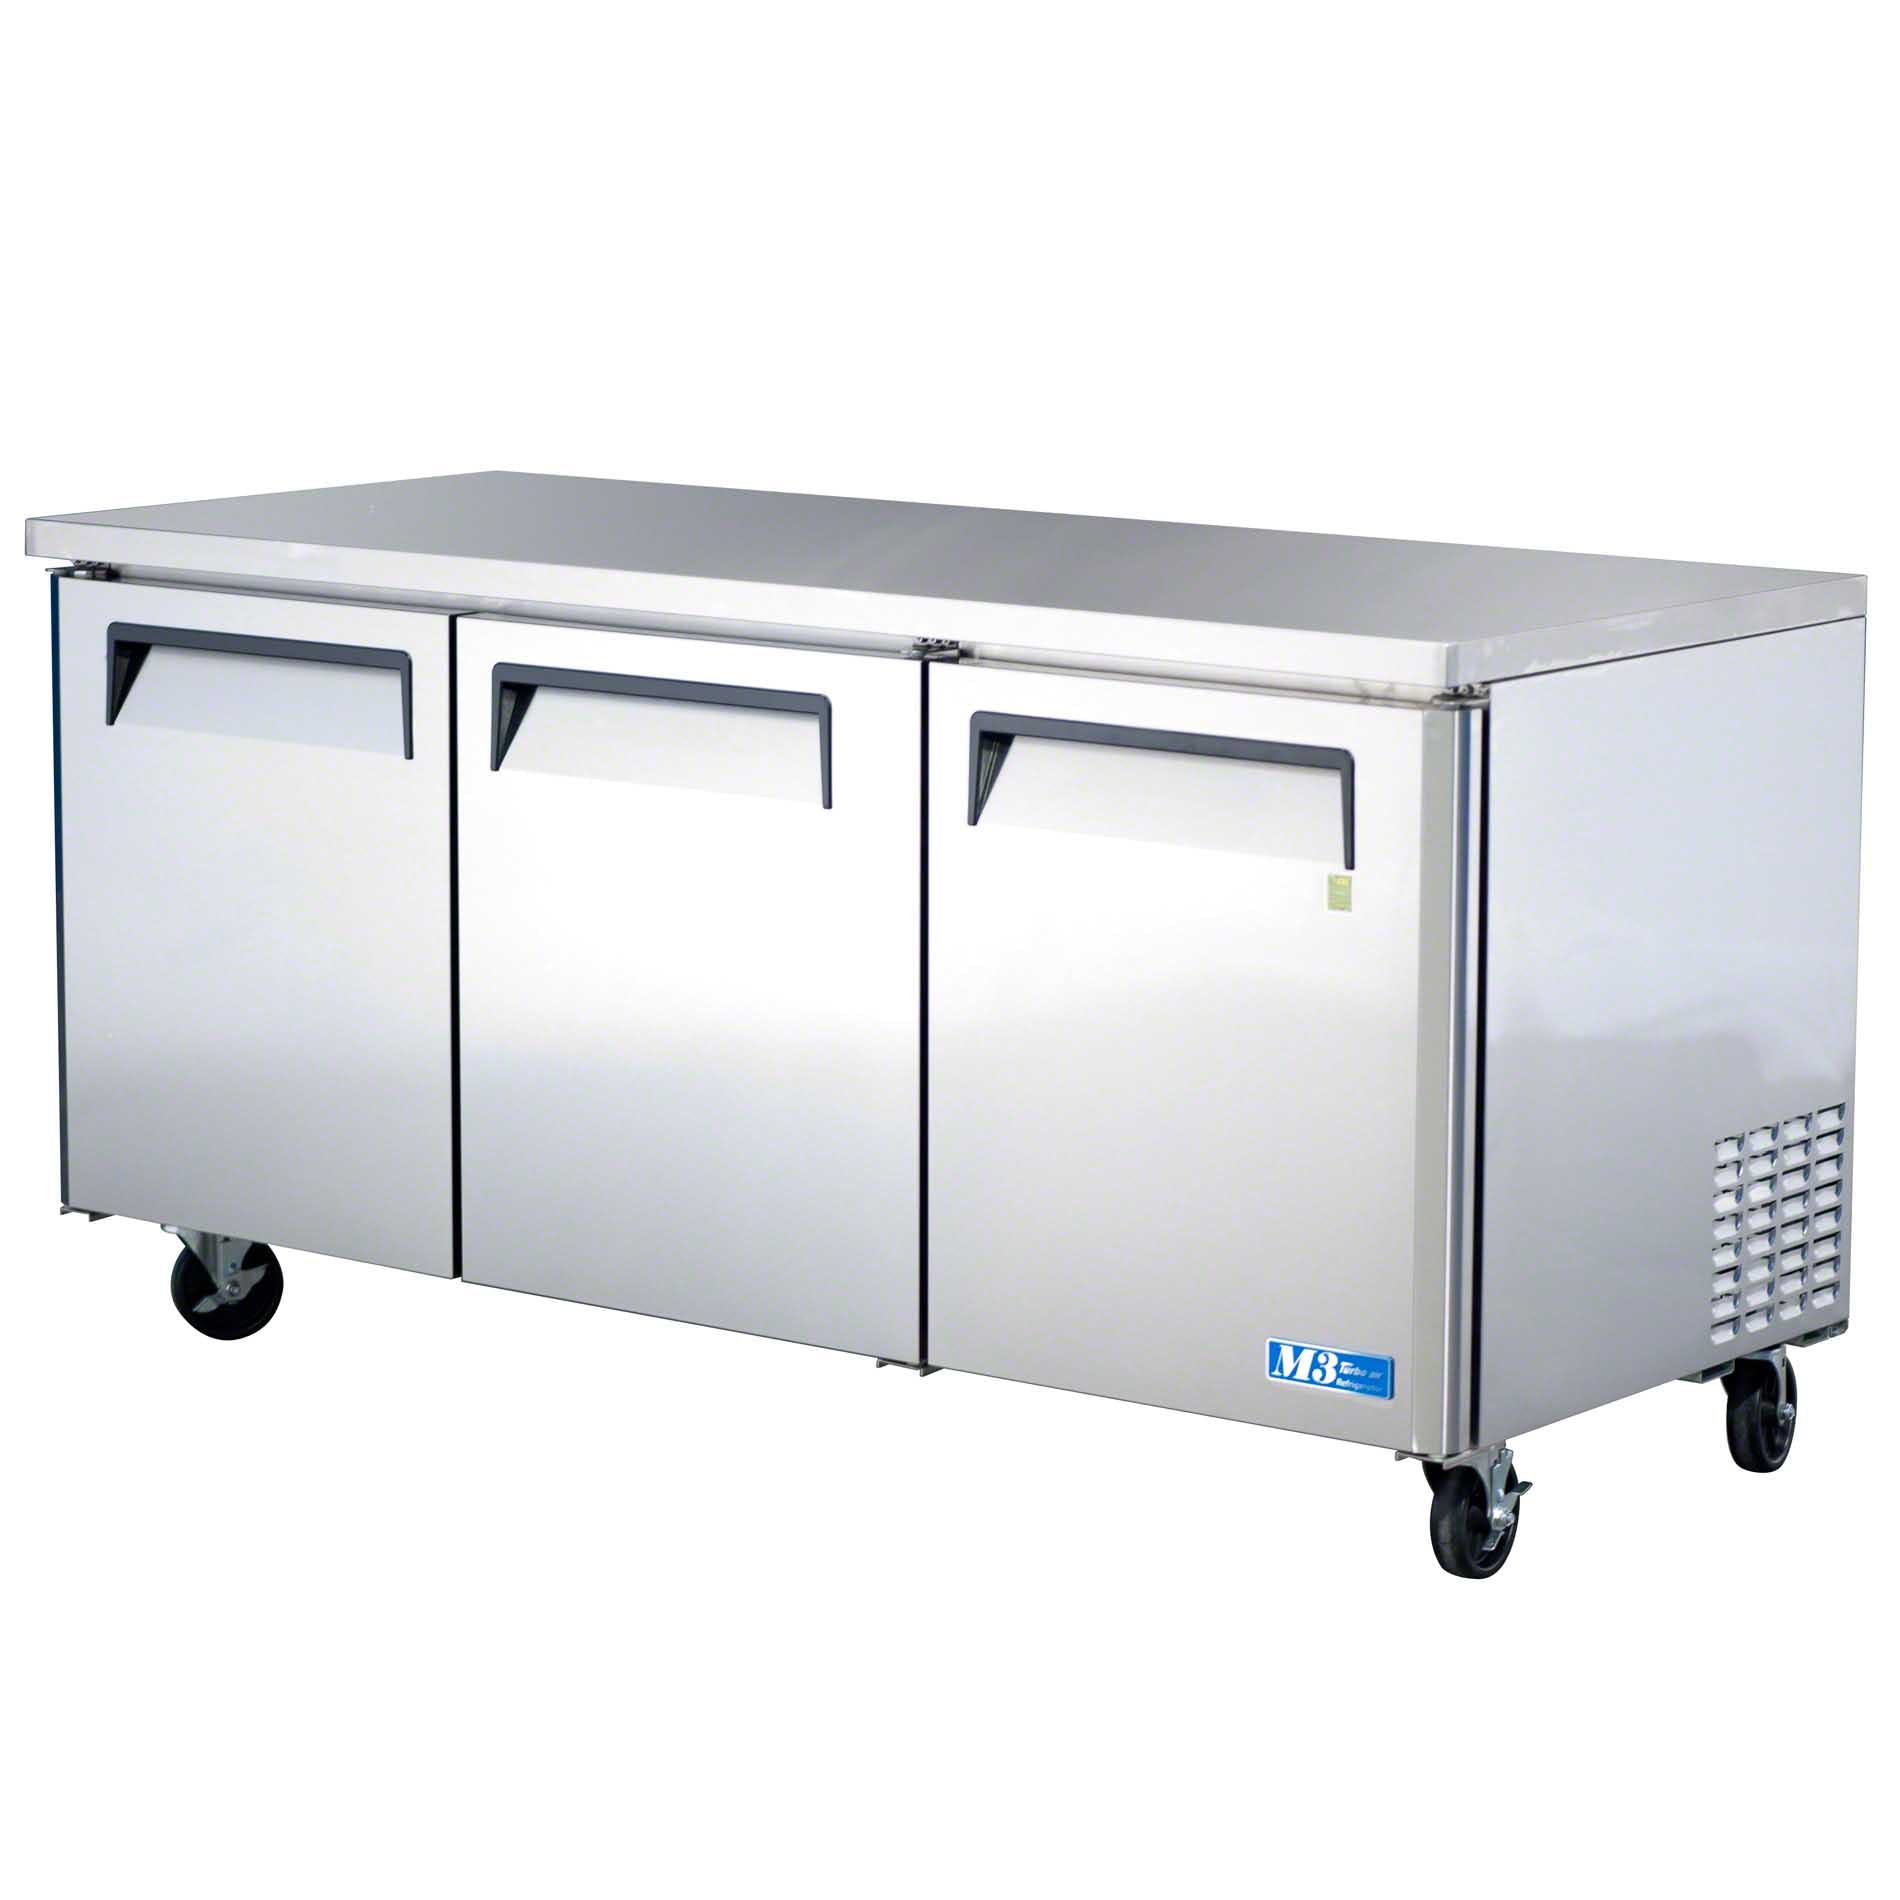 "Turbo Air - MUR-72 73"" Undercounter Refrigerator – M3 Series Commercial refrigerator sold by Food Service Warehouse"